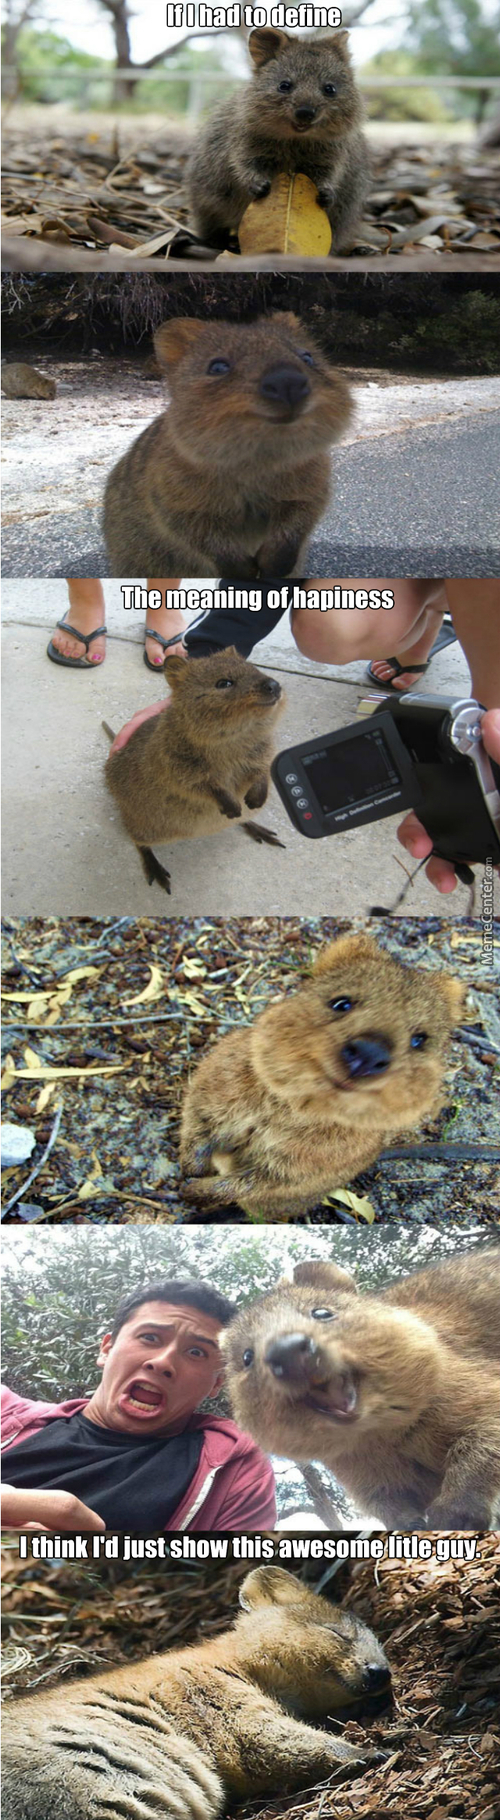 The Meaning Of Hapiness Shown By An Awesome Litle Quokka